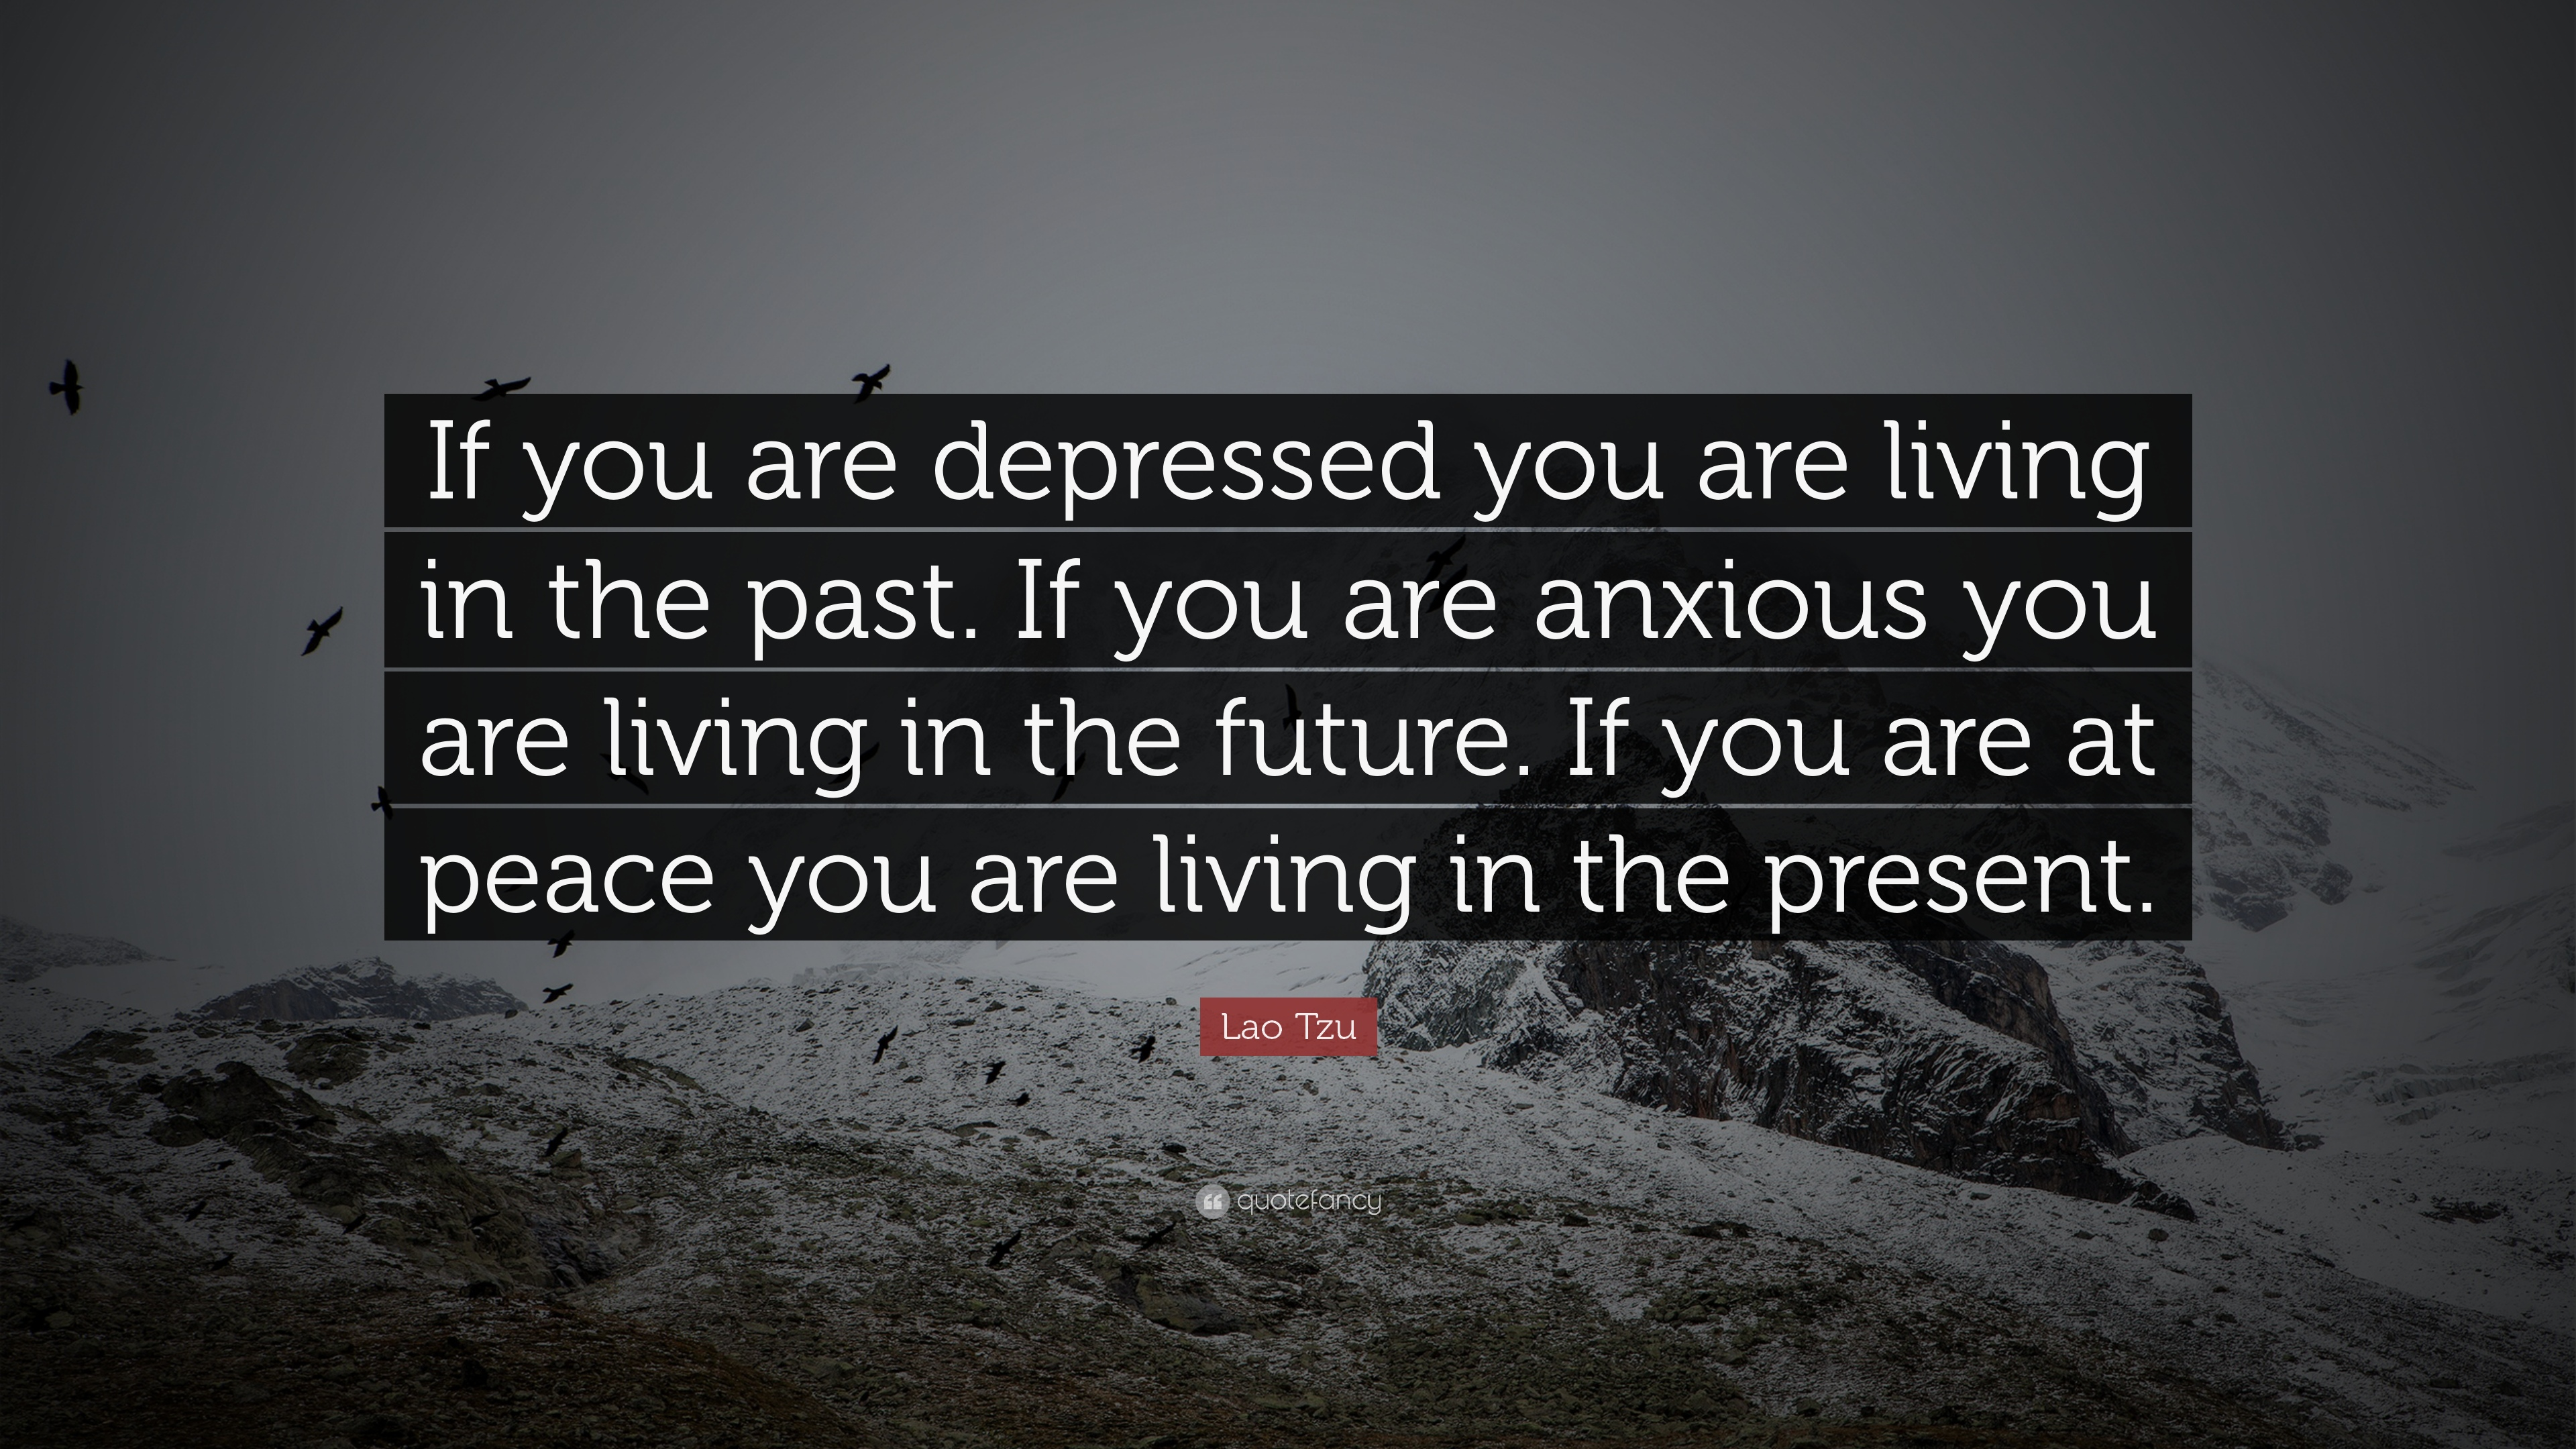 Anxiety And Depression Quotes Anxious Future Quote October Wallpaper  Inspiring Quotes And